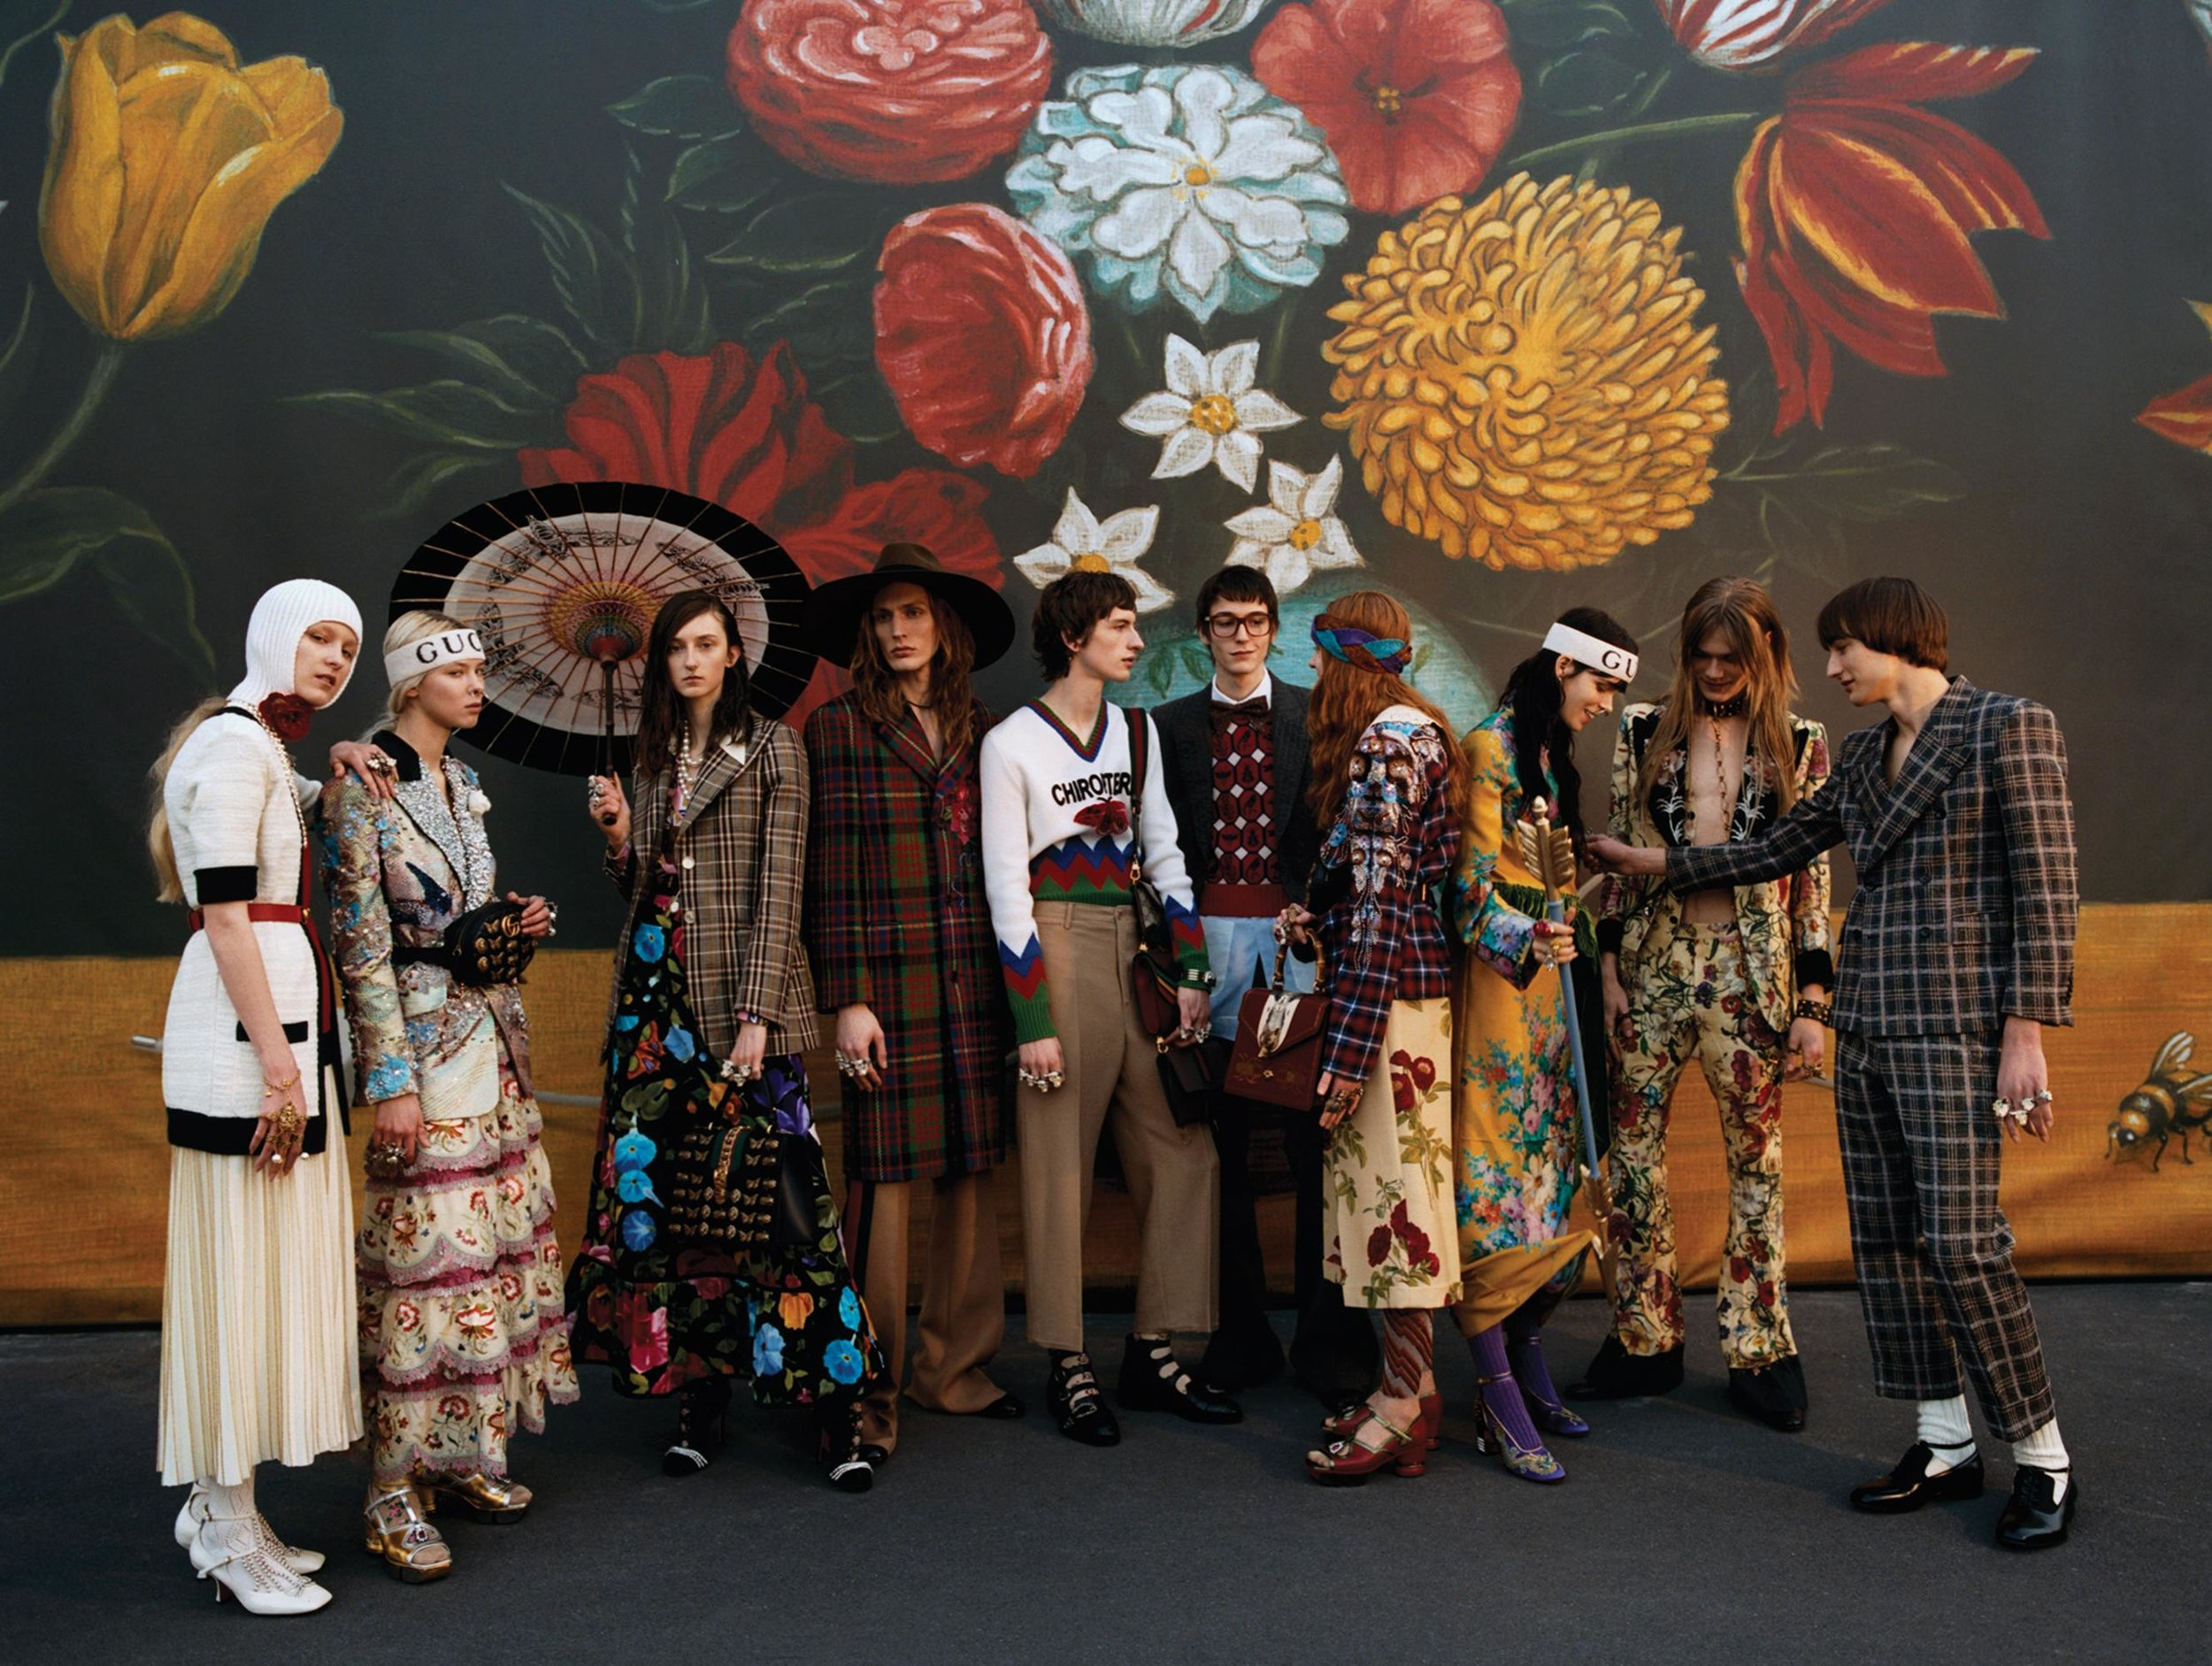 FLOWER POWER | Models wearing pieces from the fall 2017 Gucci collection, at the brand's headquarters in Milan. PHOTO: QUENTIN DE BRIEY FOR WSJ. MAGAZINE